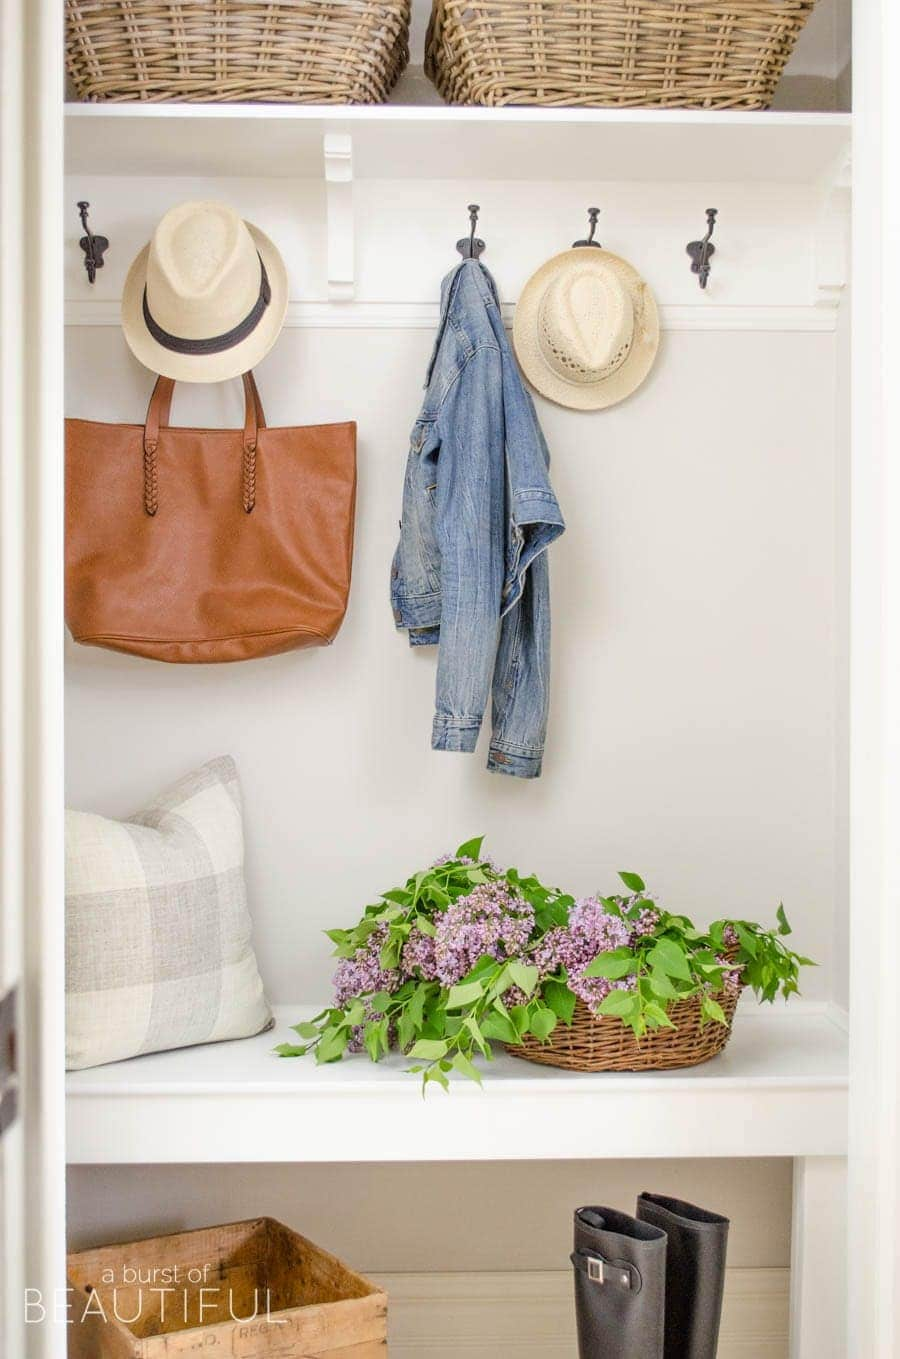 Top 10 Budget Decorating Tips | A Burst of Beautiful | blesserhouse.com